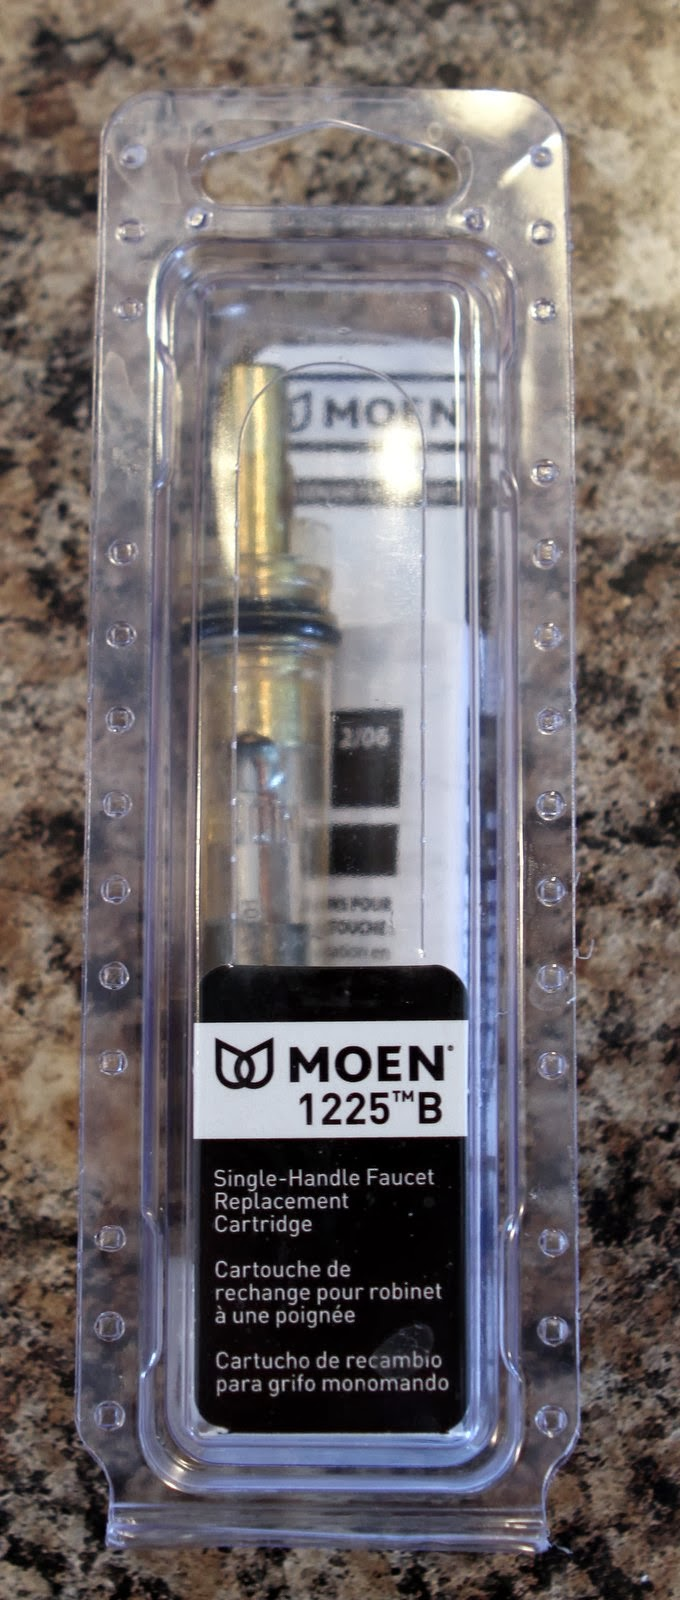 moen 1225 kitchen faucet cartridge repair or replacement 1225 cartridge repair kit